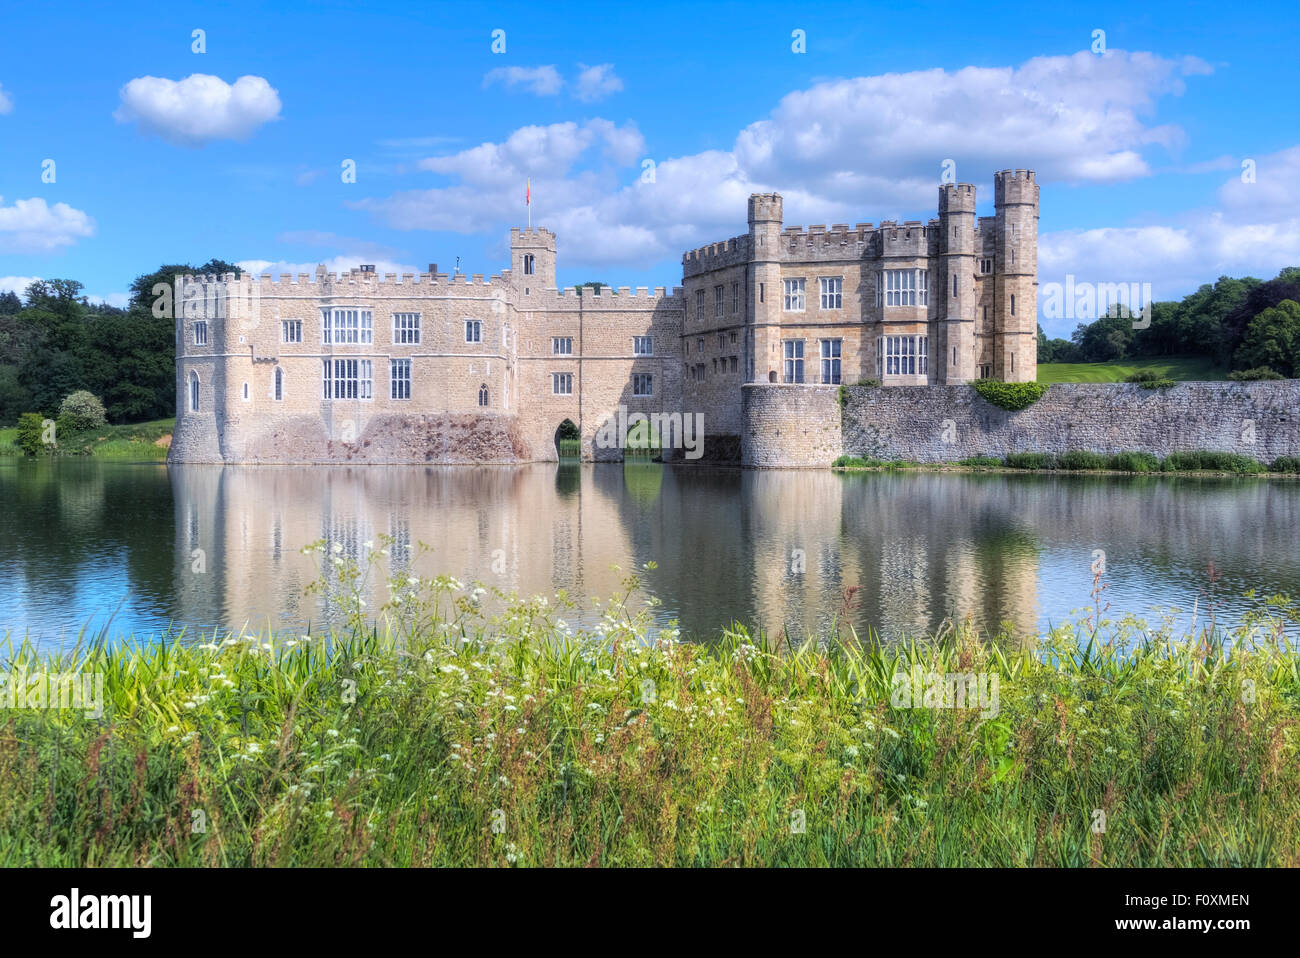 Leeds Castle, Maidstone, Kent, England, United Kingdom Stock Photo